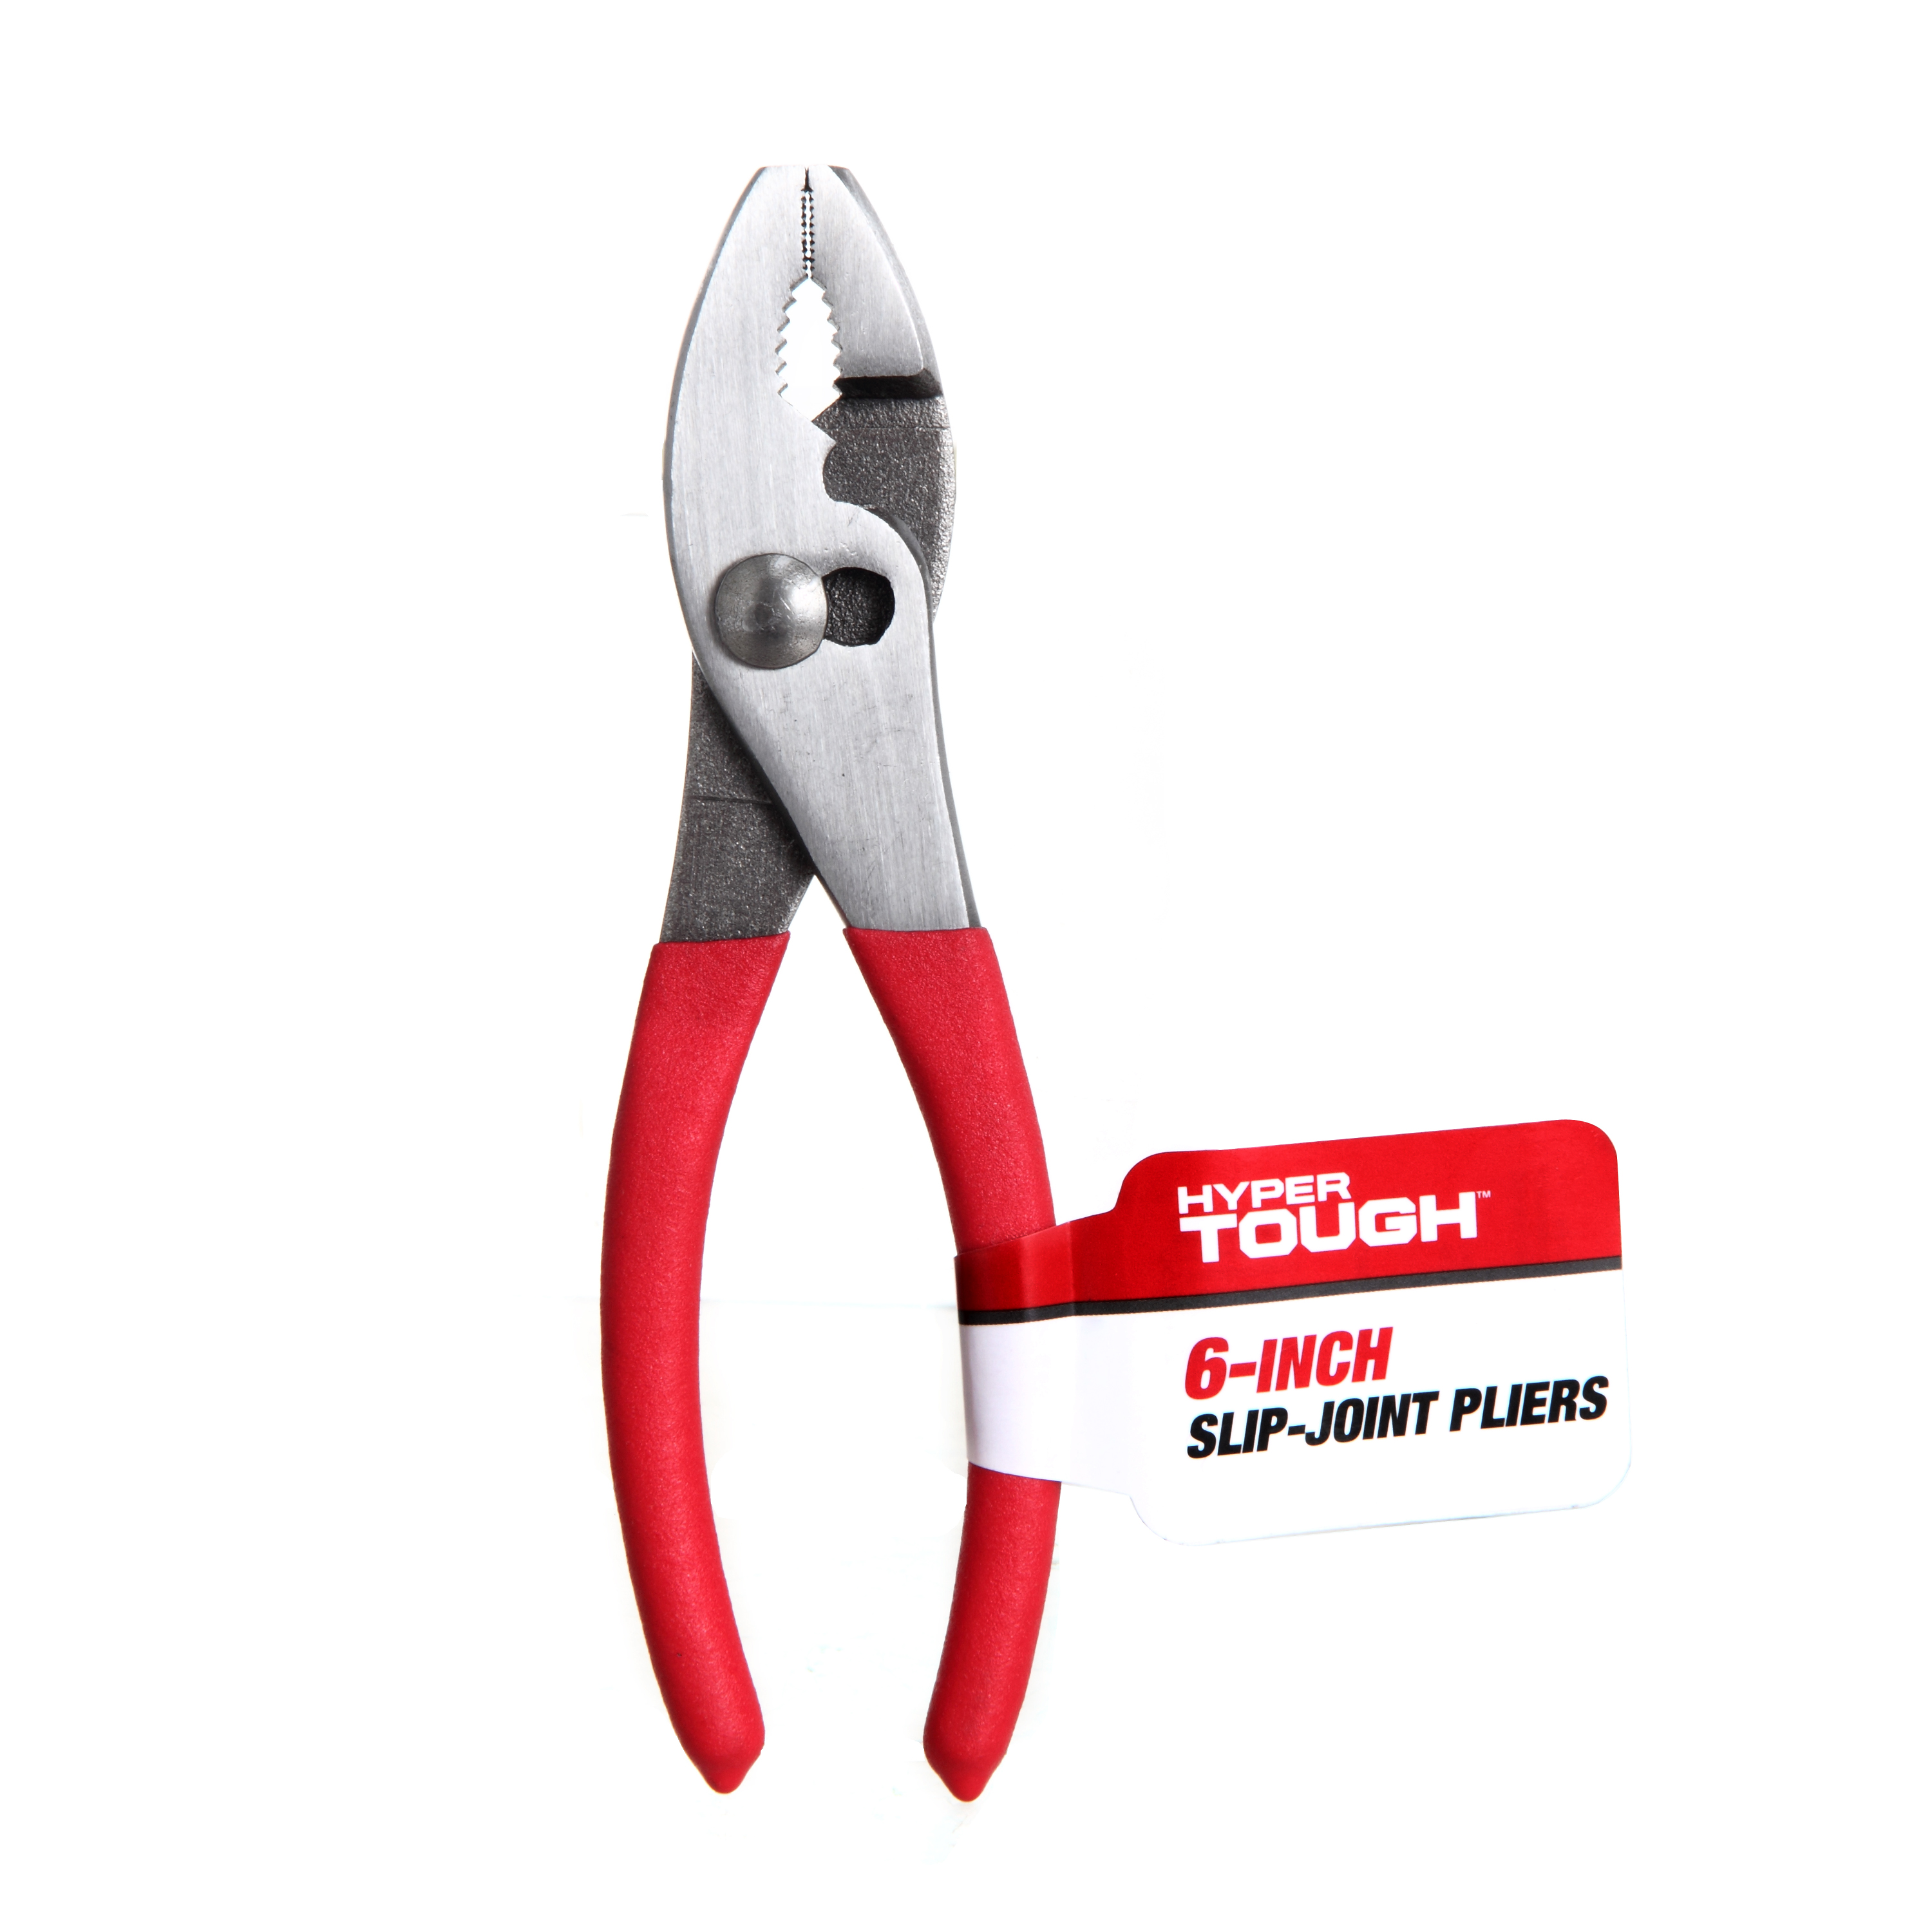 Hyper Tough 6-Inch Slip Joint Plier with Non-Slip Grip